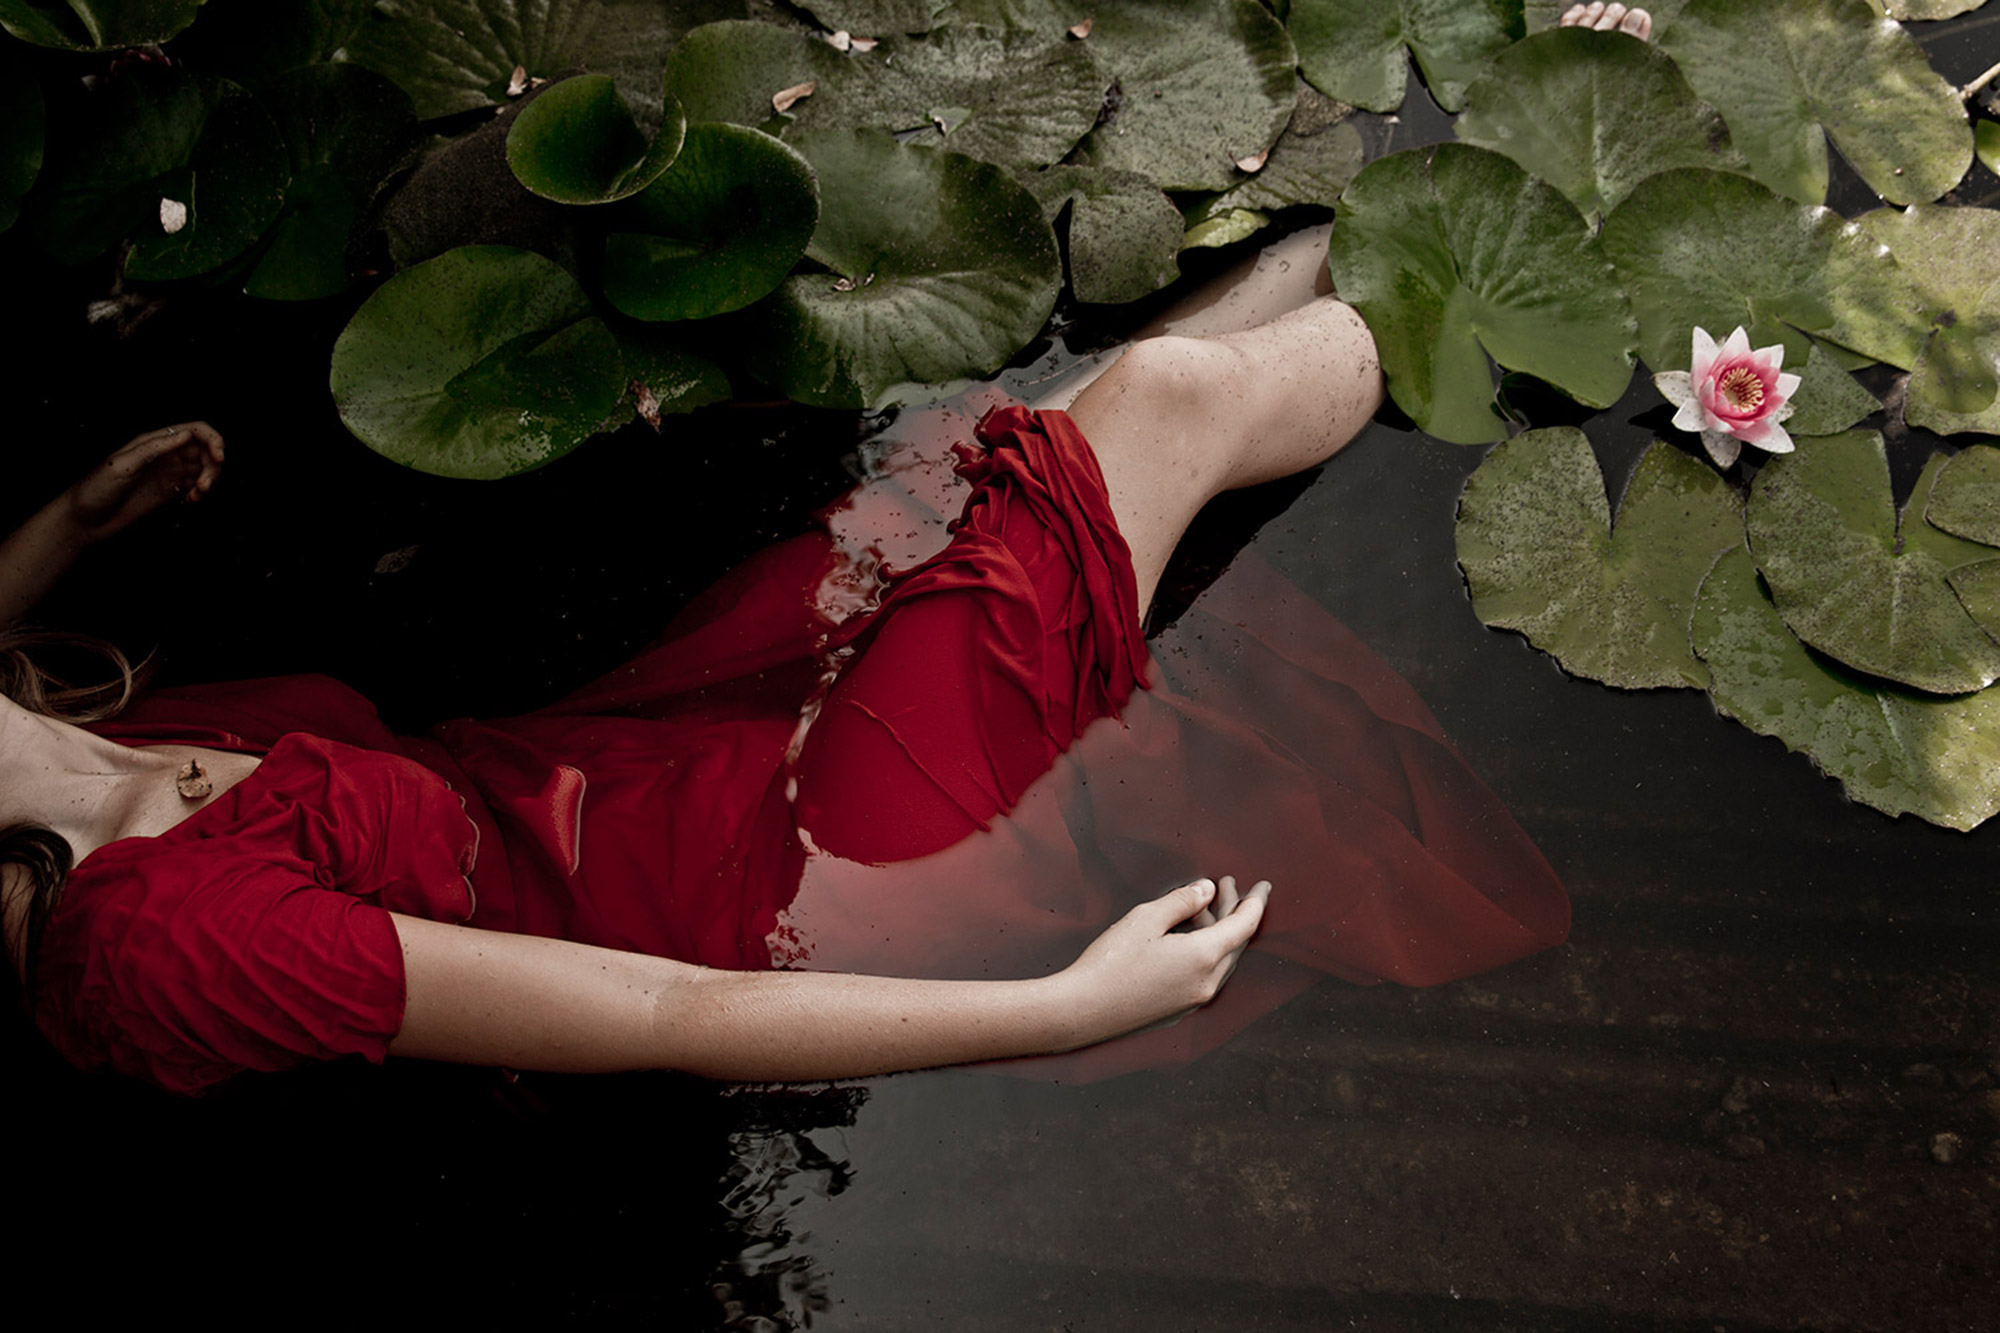 Tragedy and Dreams in Photography by Monia Merlo